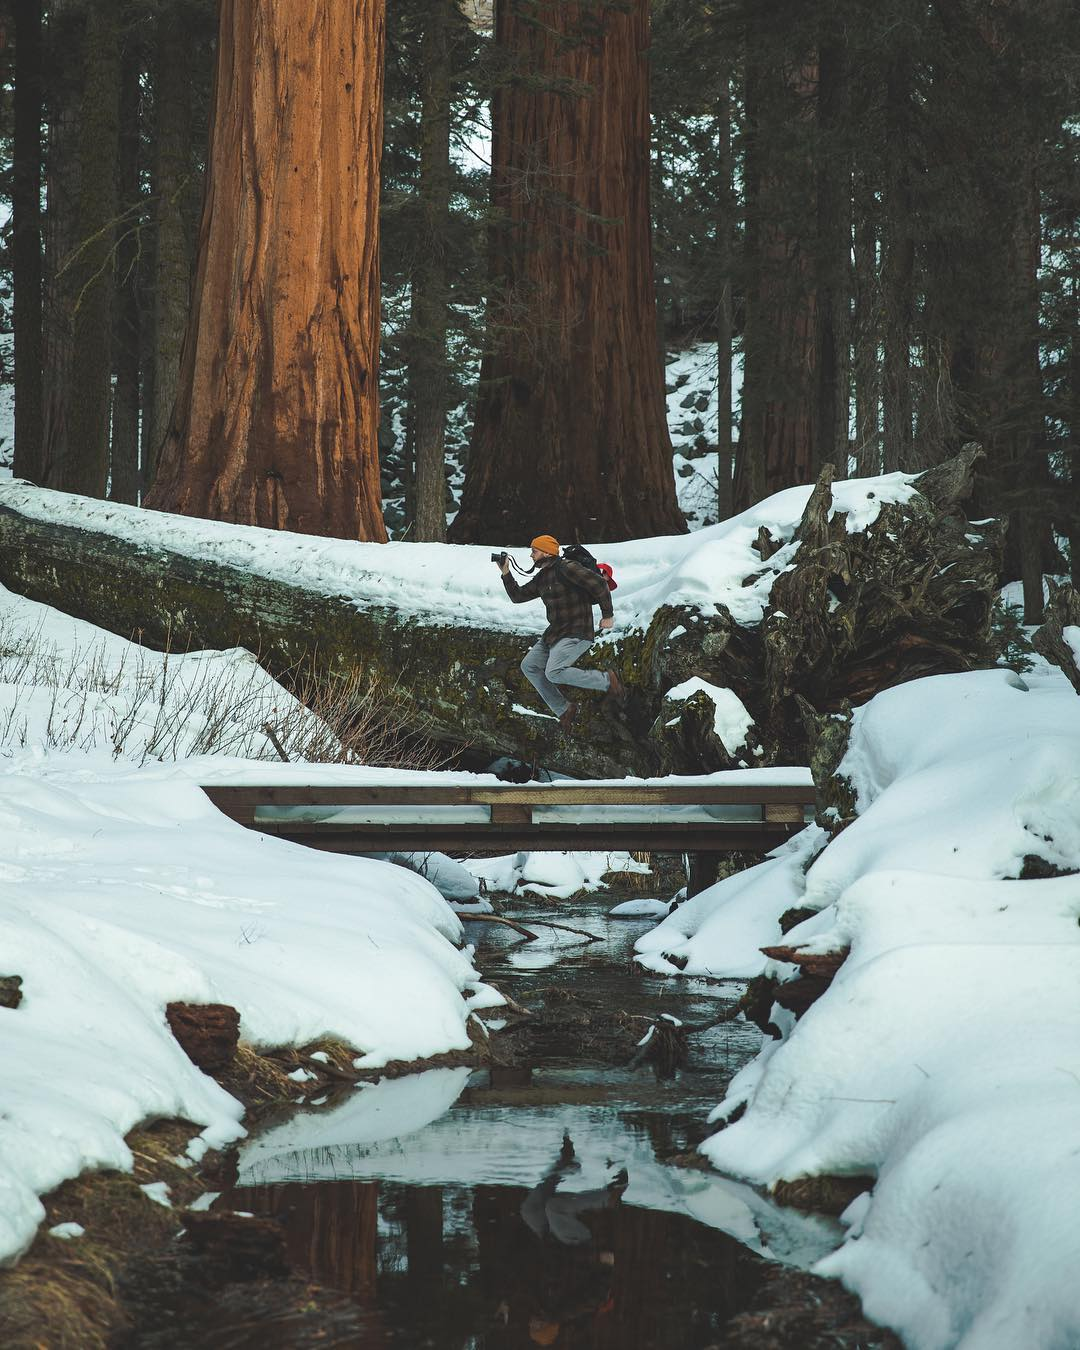 Top 7 National Parks in the USA - Sequoia National Park